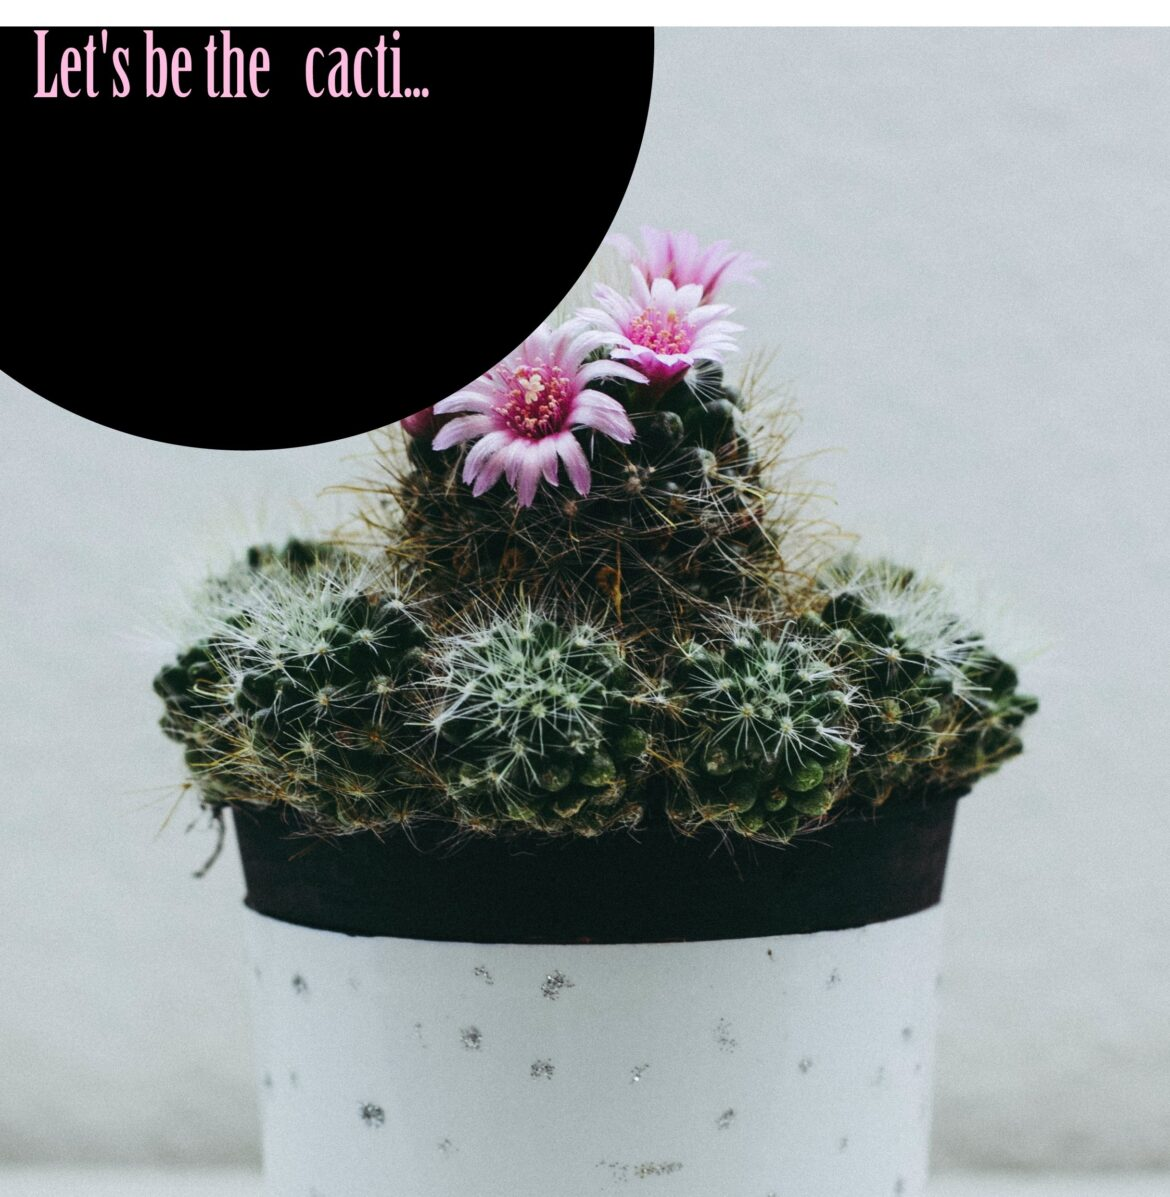 Let's be the cacti… – Short Motivational Story by Bobby George